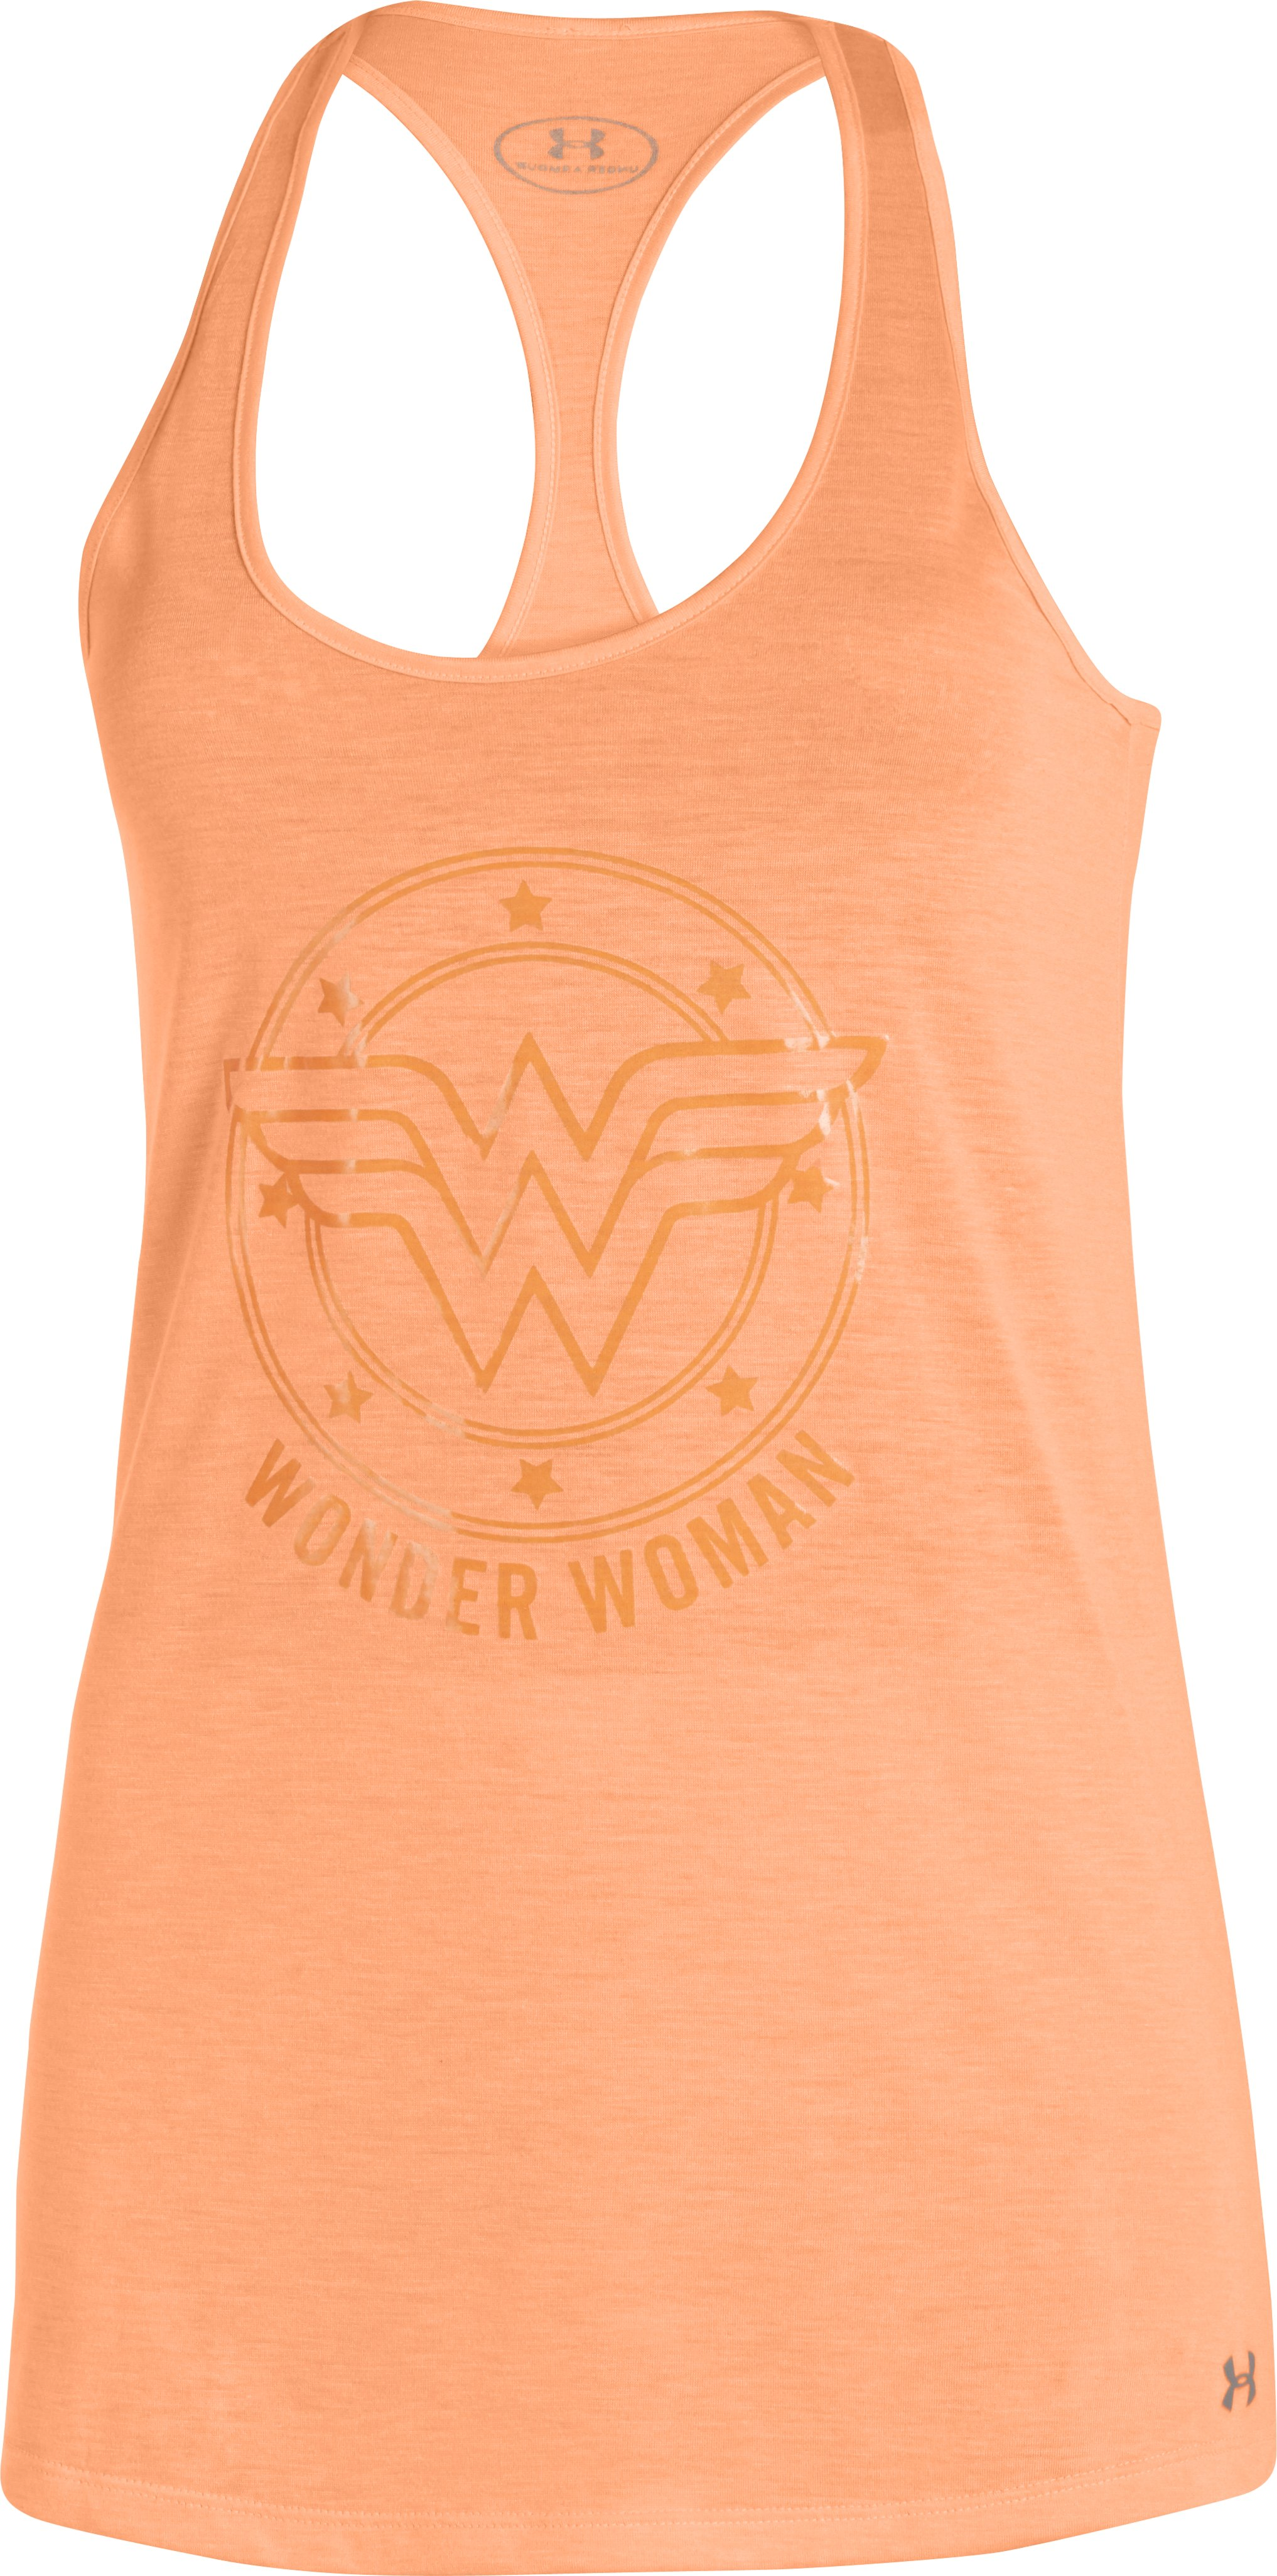 Women's Under Armour® Alter Ego Wonder Woman Tank, Afterglow